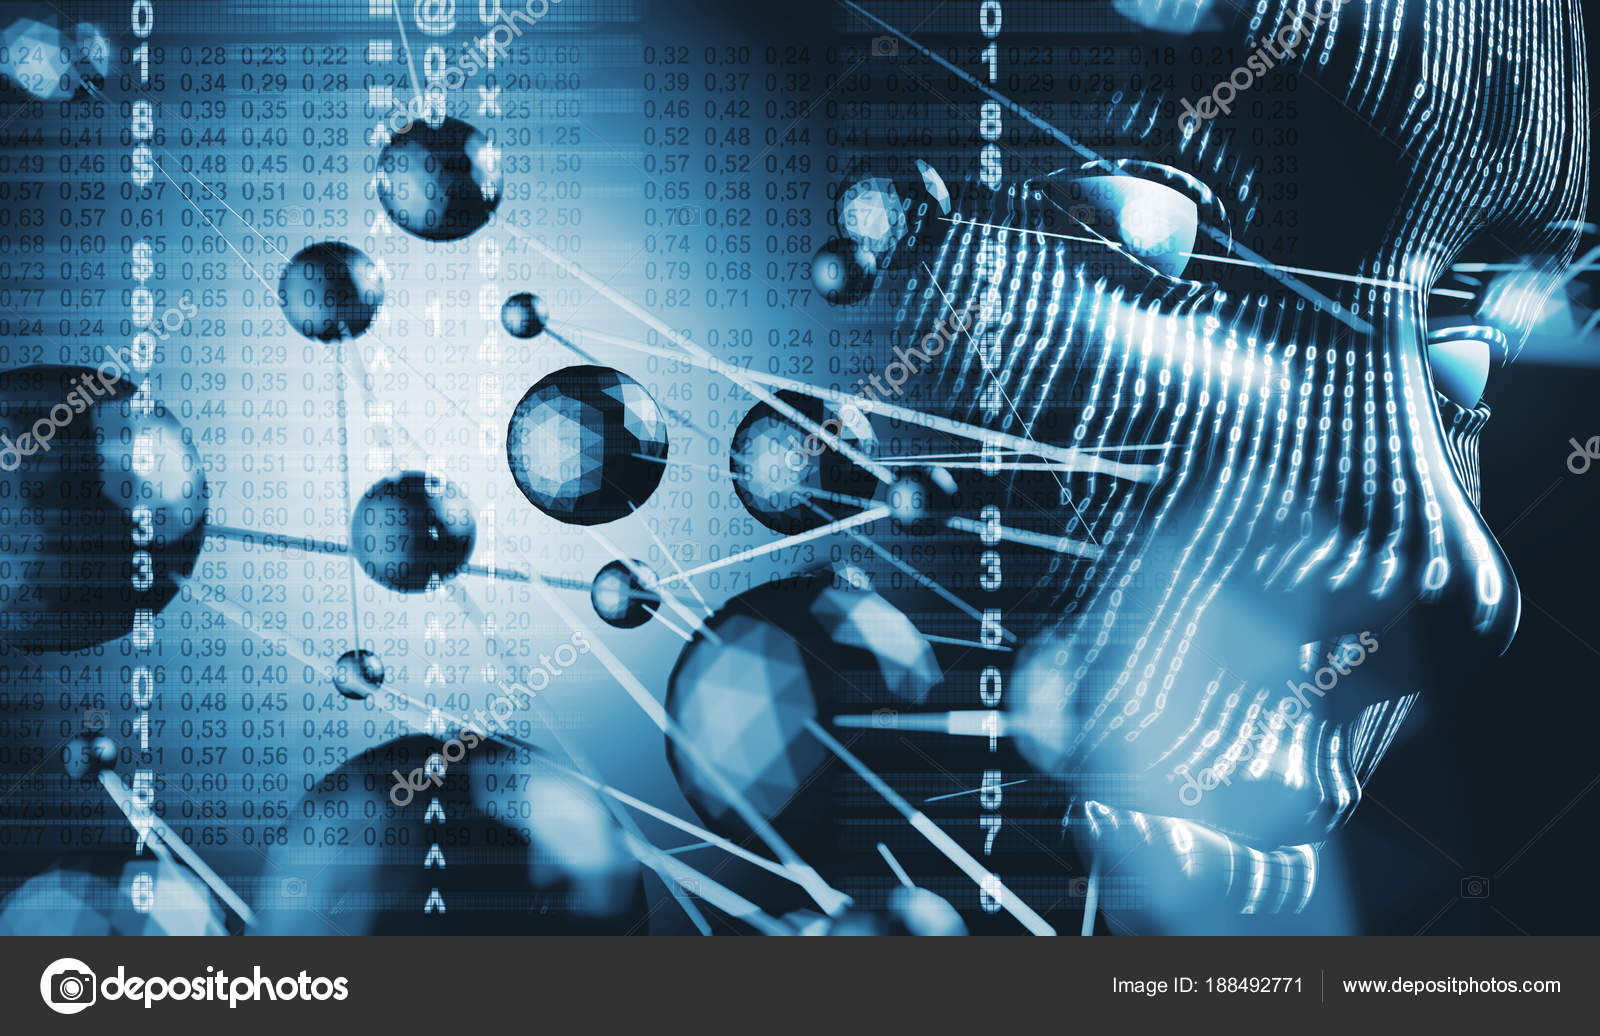 Binary Code And Cyberspace Concept Stock Photo Carloscastilla Abstact Background With Circuit Board Images